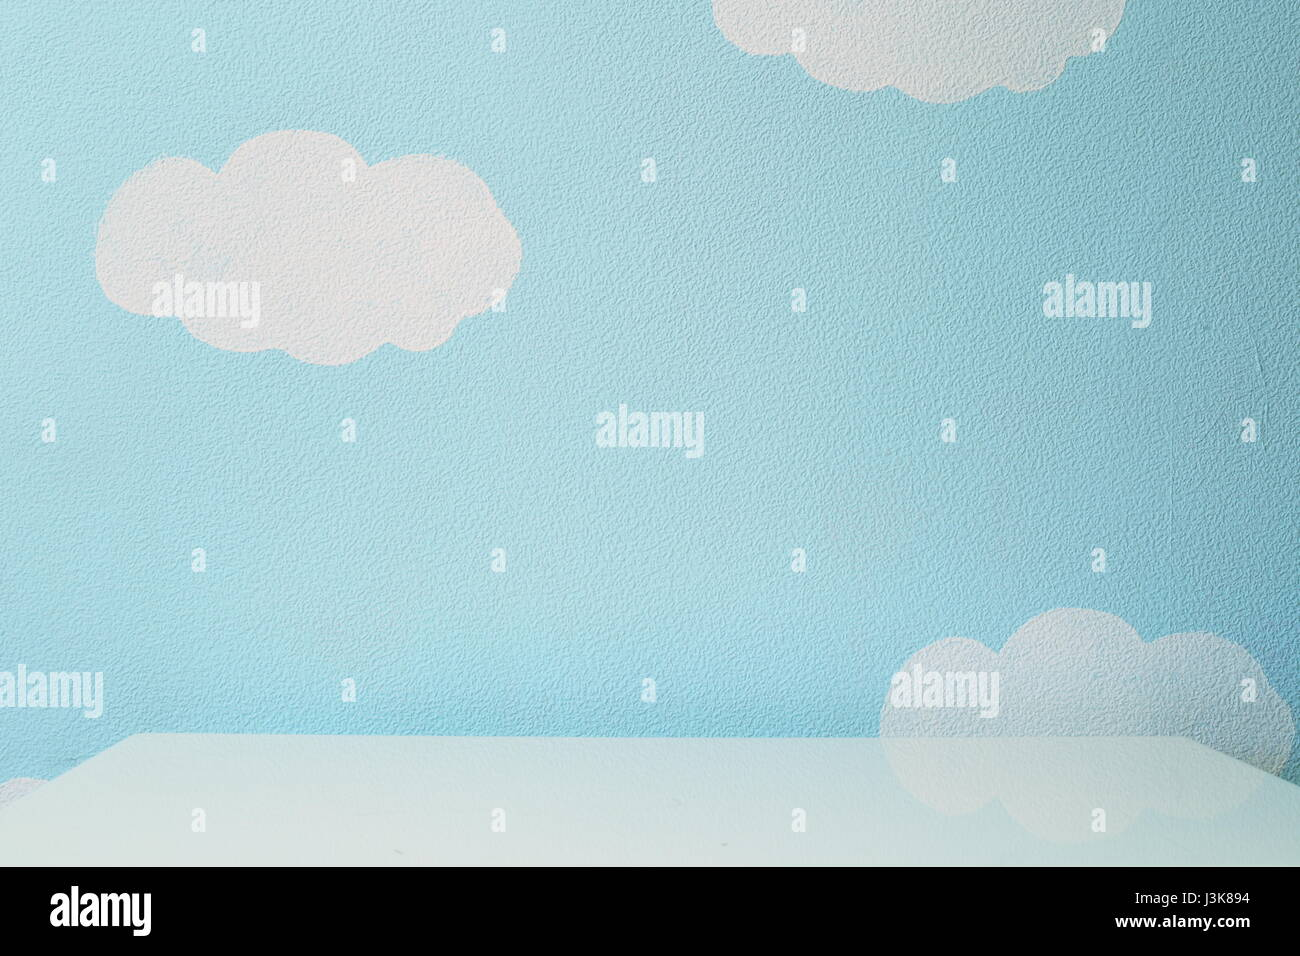 Kids Template Stockfotos & Kids Template Bilder - Alamy